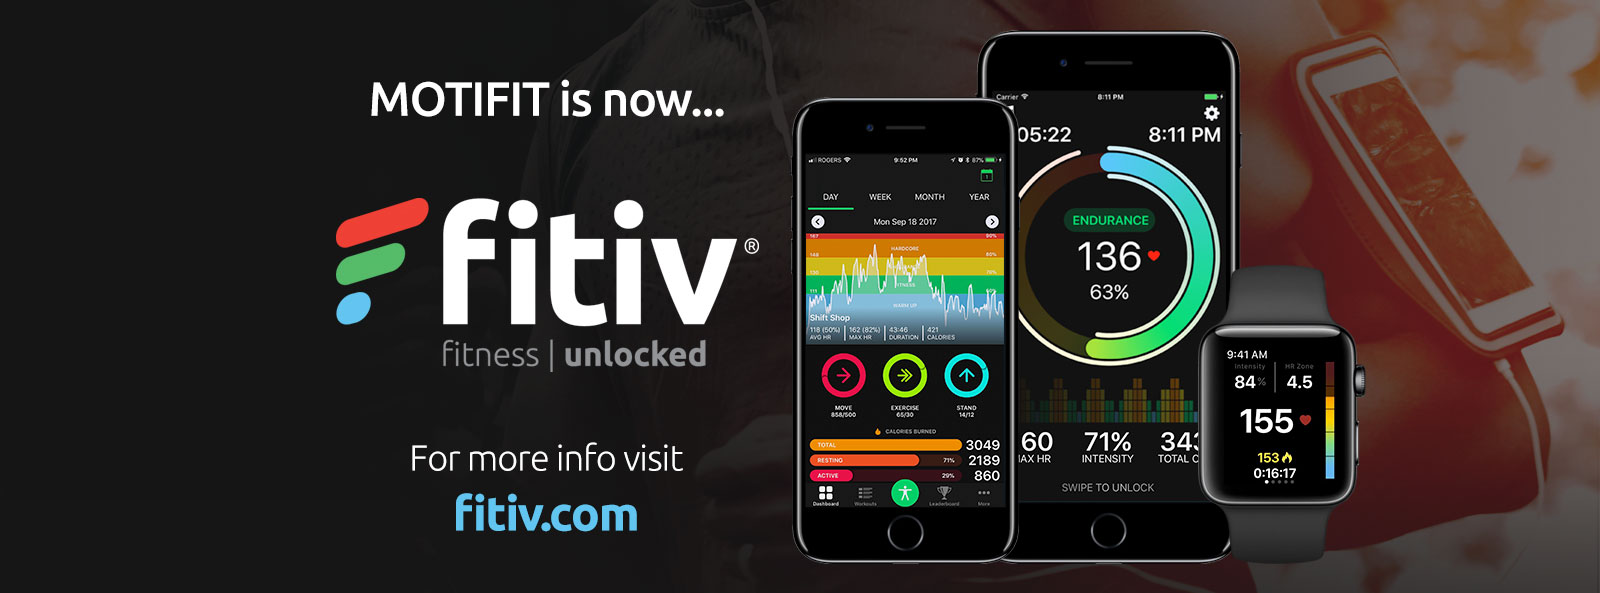 MotiFIT is now FITIV! For more info visit FITIV.com